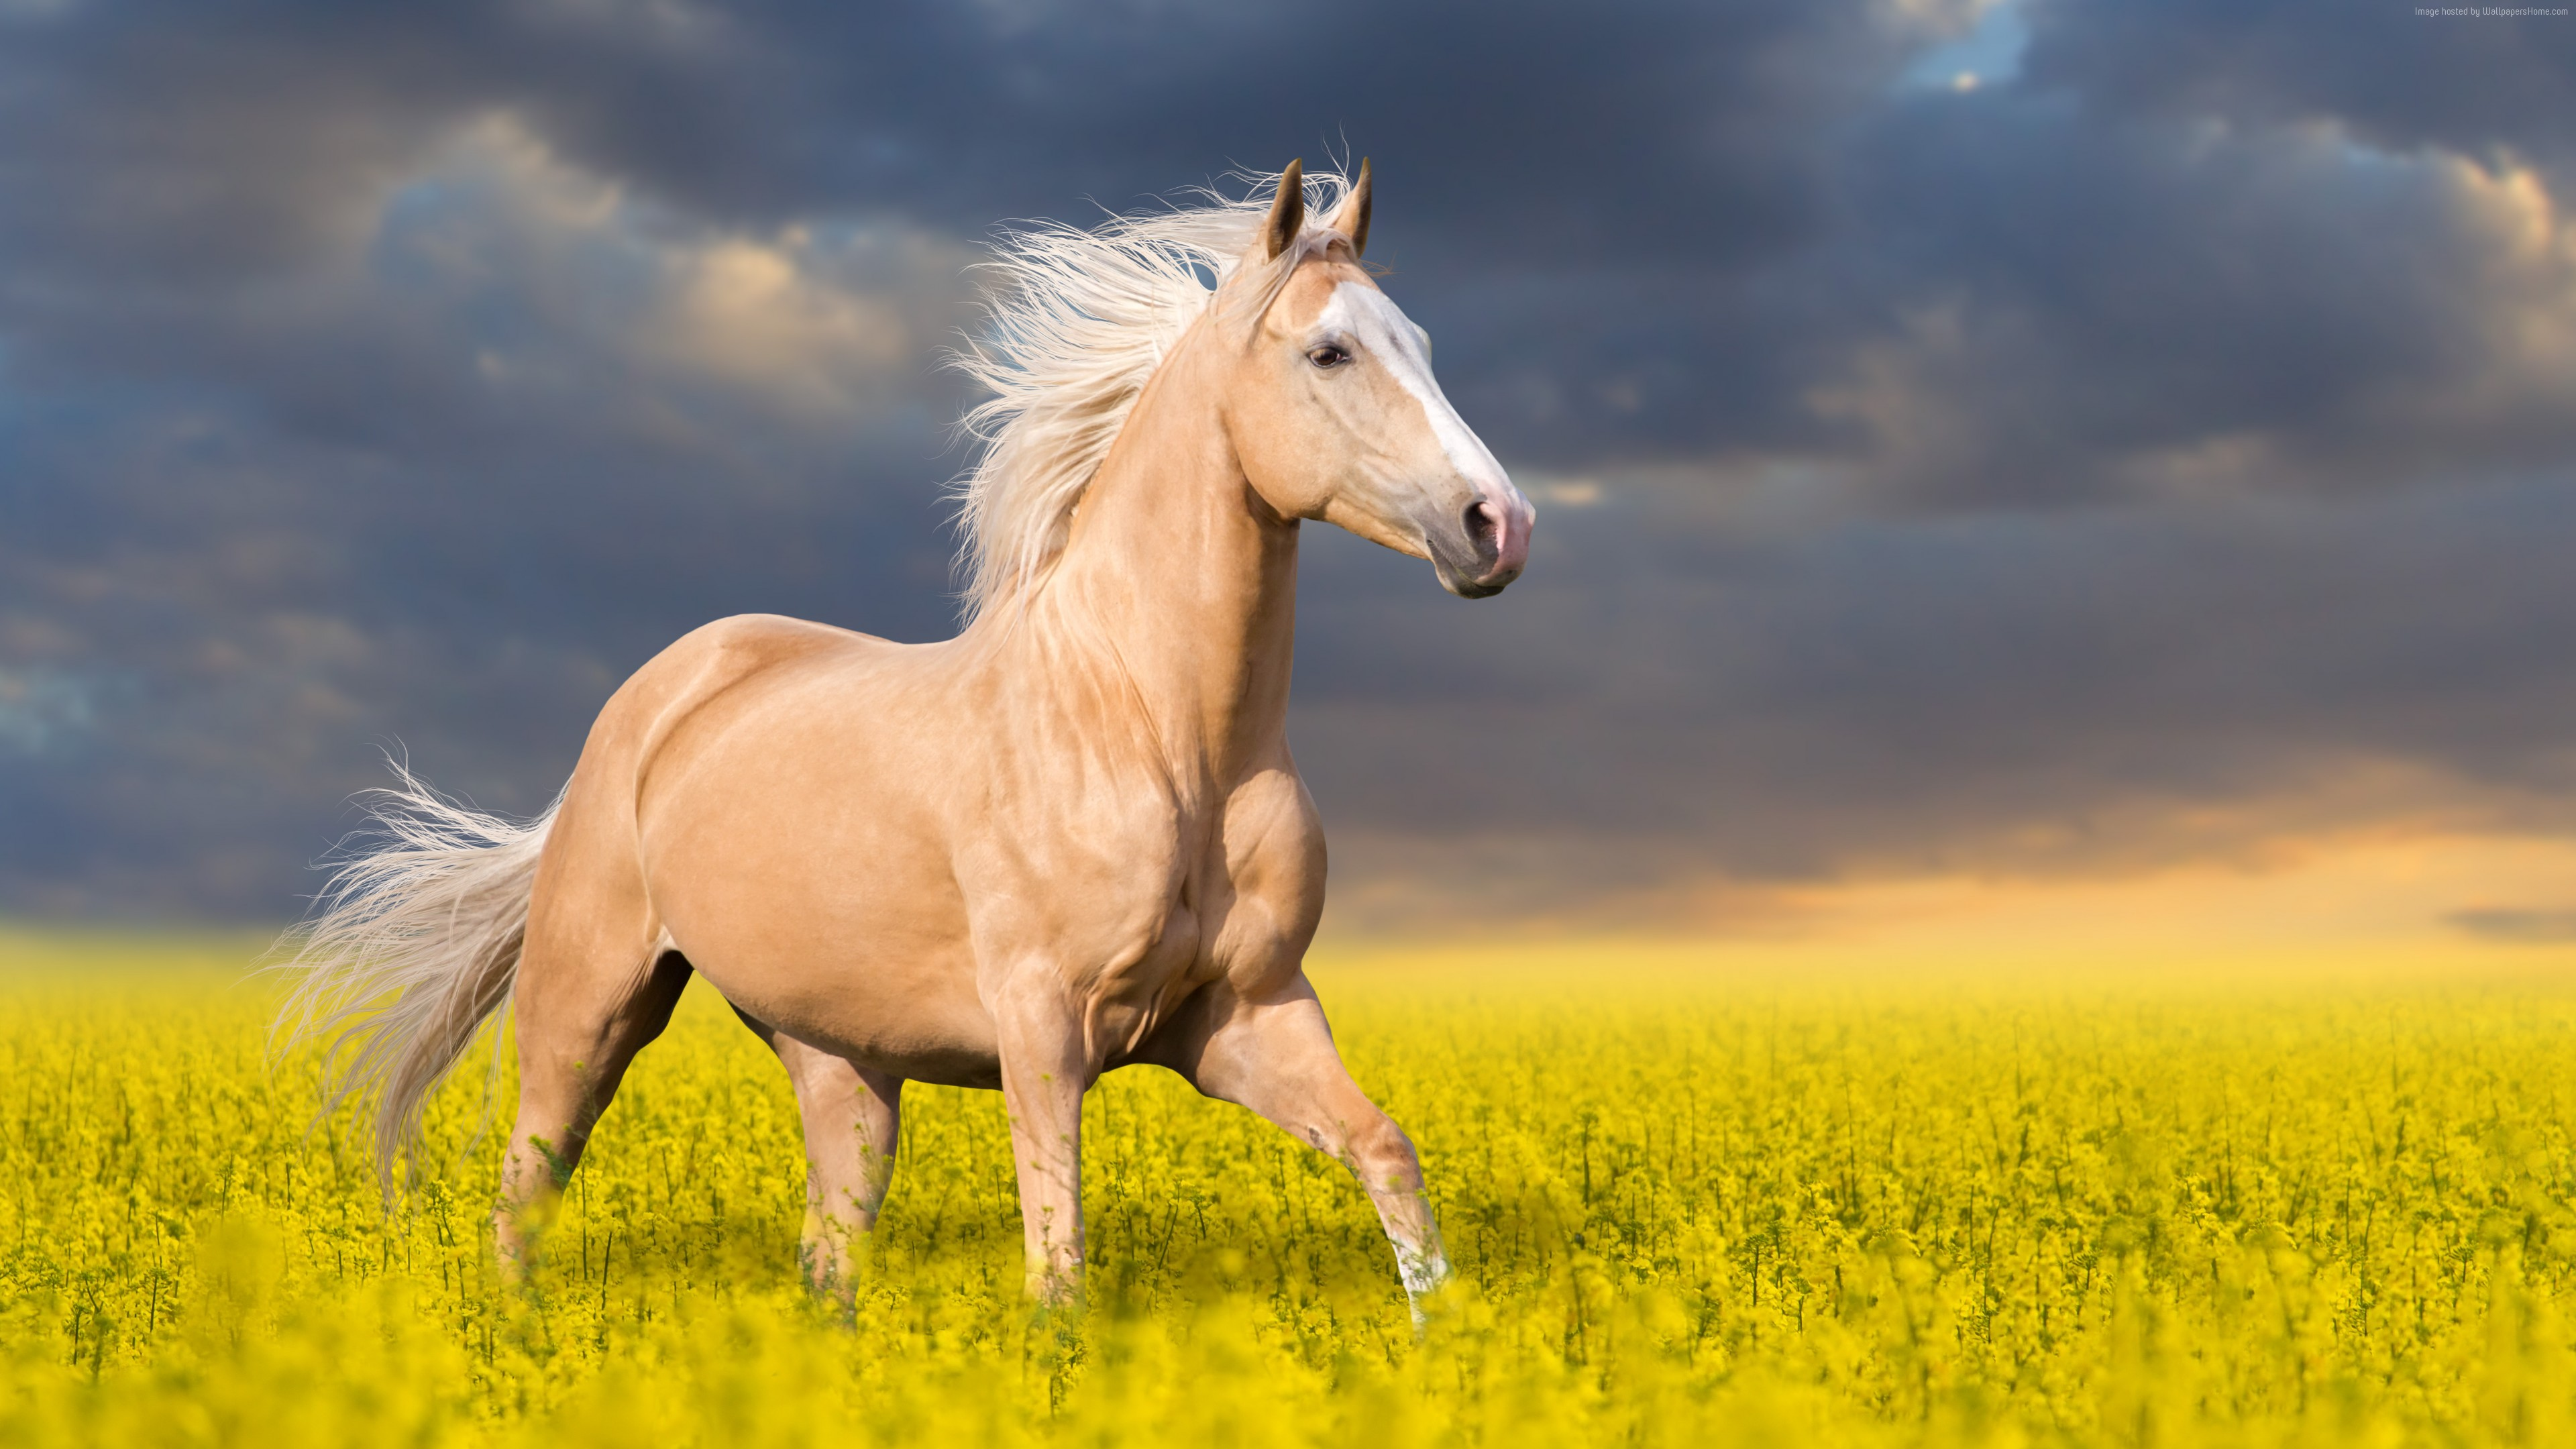 Stock Images Horse, cute animals, 5k, Stock Images